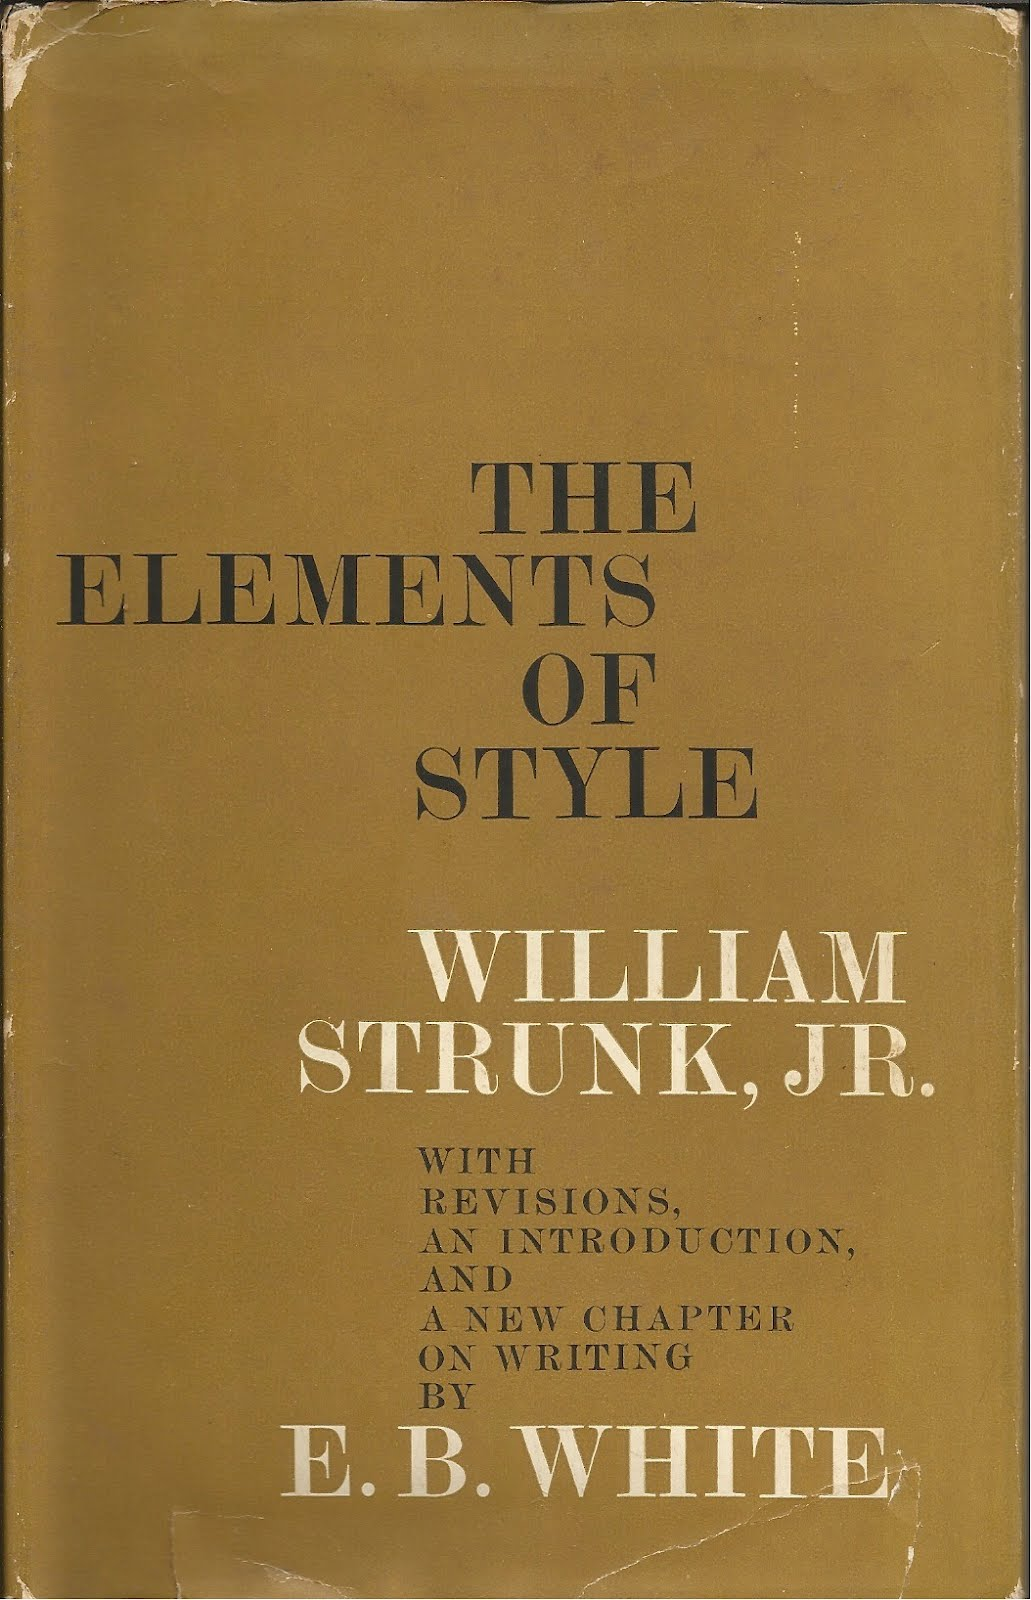 a literary analysis of the elements of style by william strunk jr and e b white The elements of style by william strunk jr and e b white literary elements writing literary analysis.